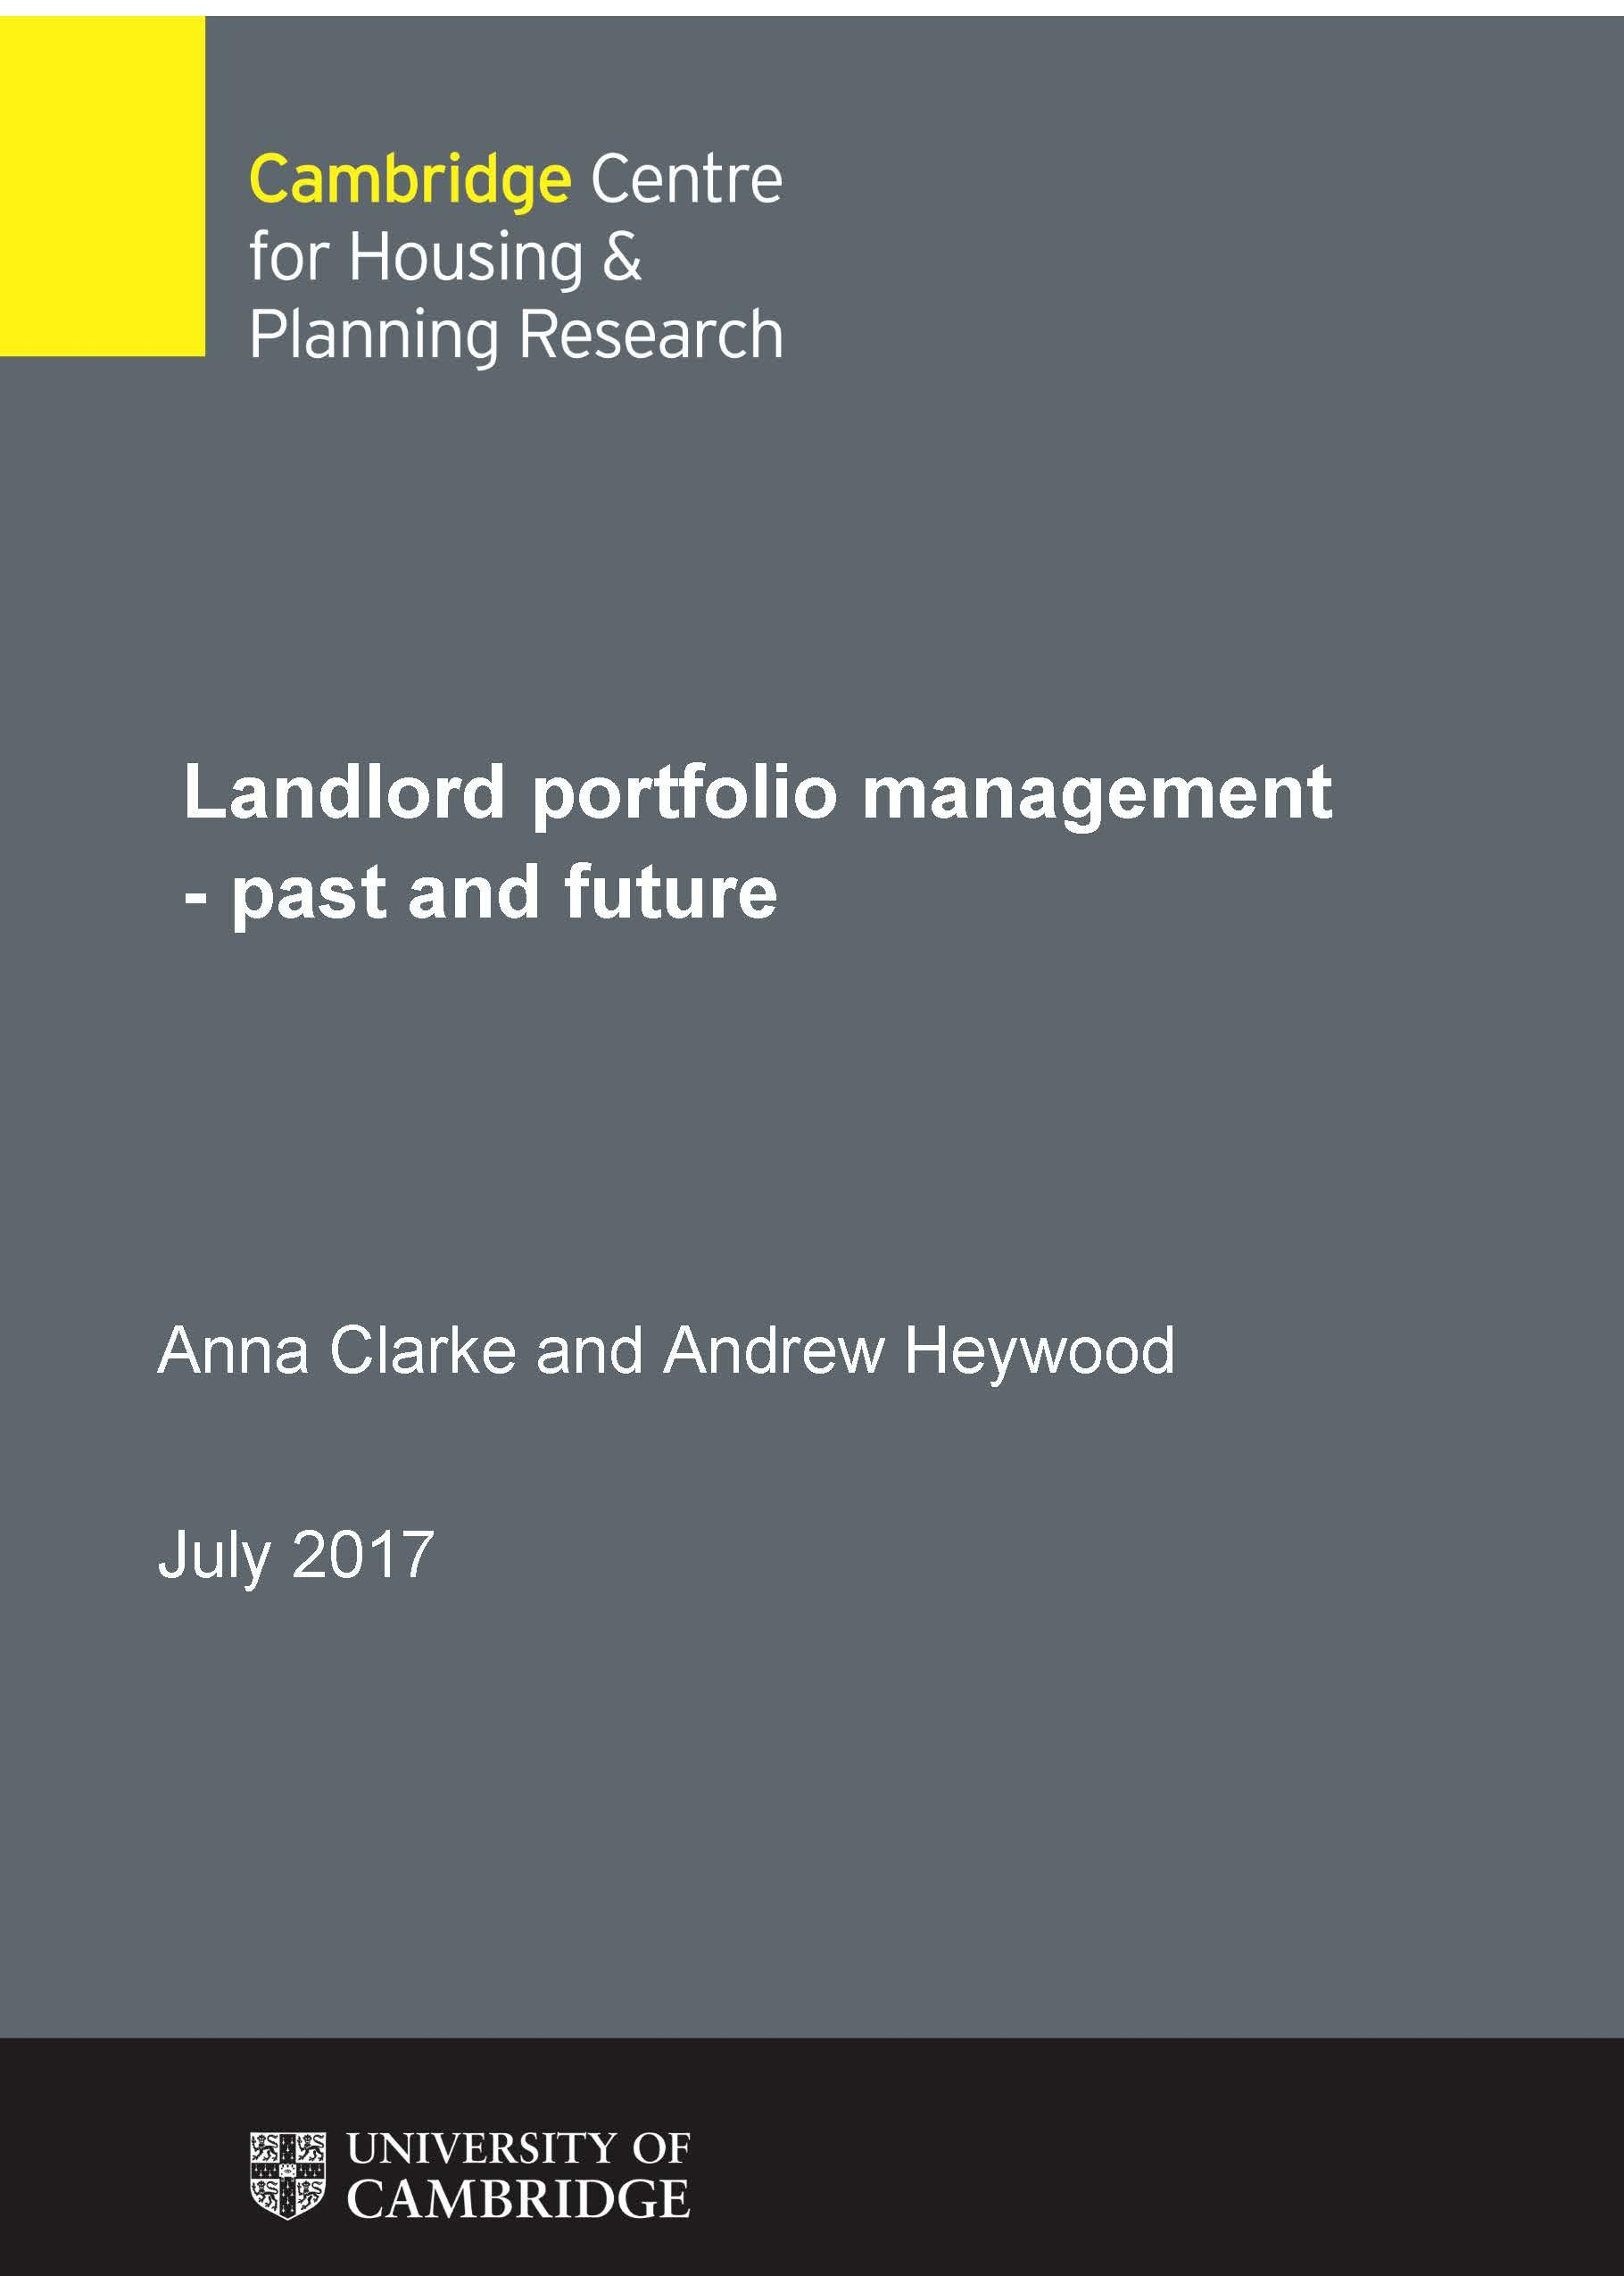 New report published gives insight into how landlords make decisions